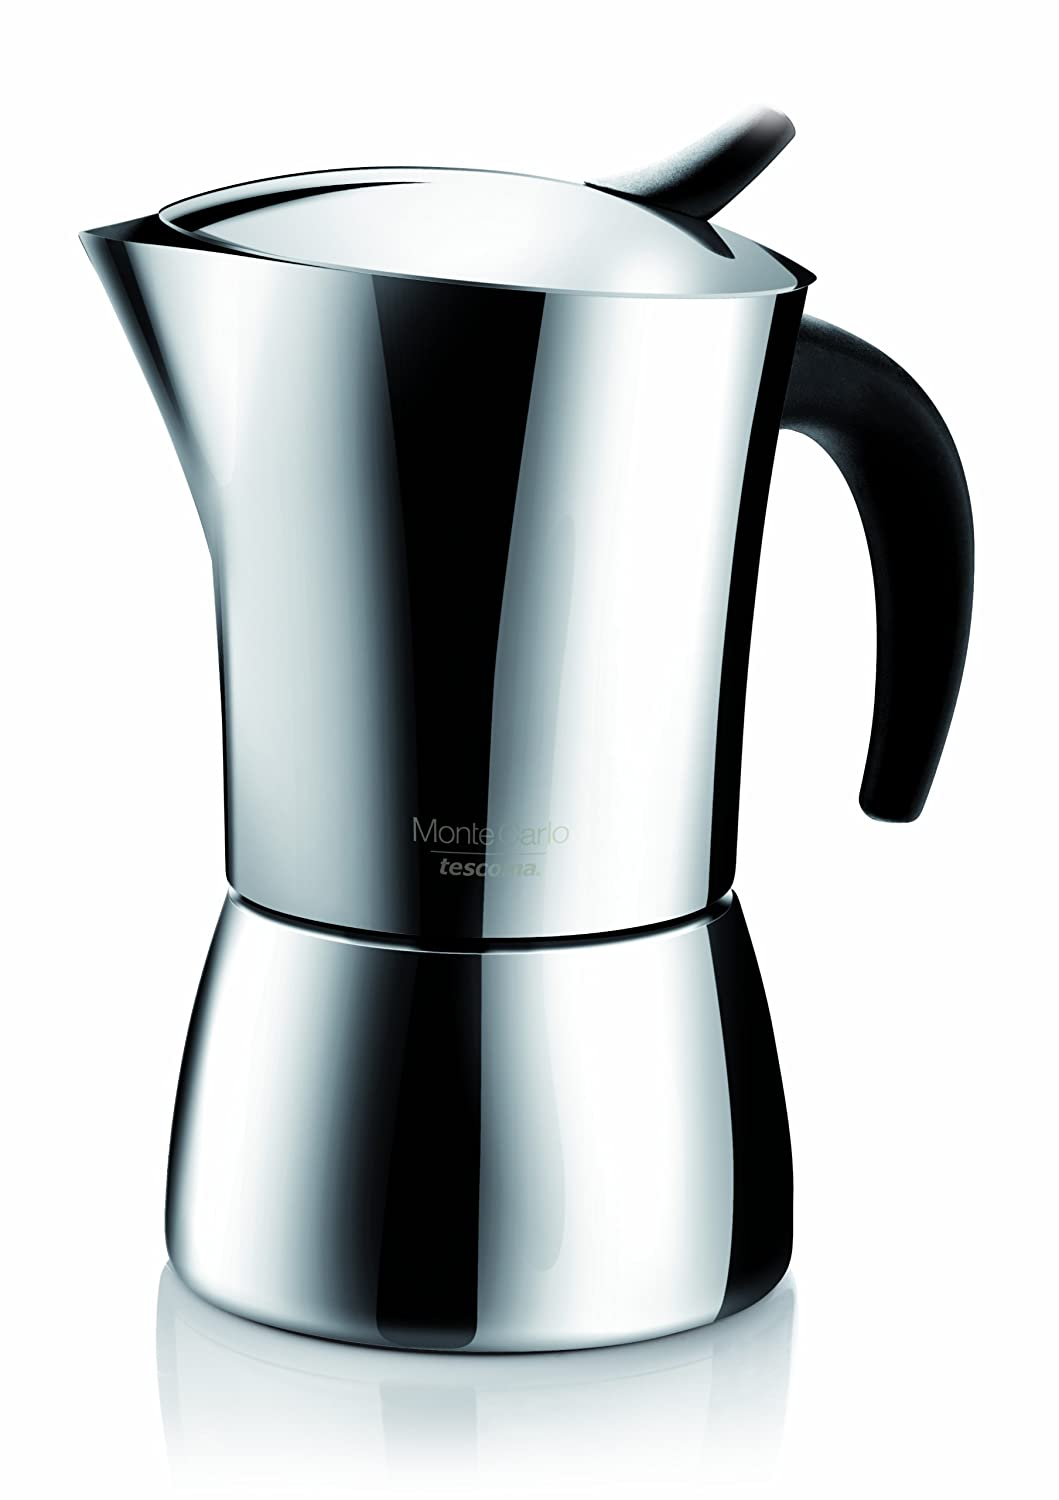 Tescoma Coffee maker MONTE CARLO, 4 cups T647104